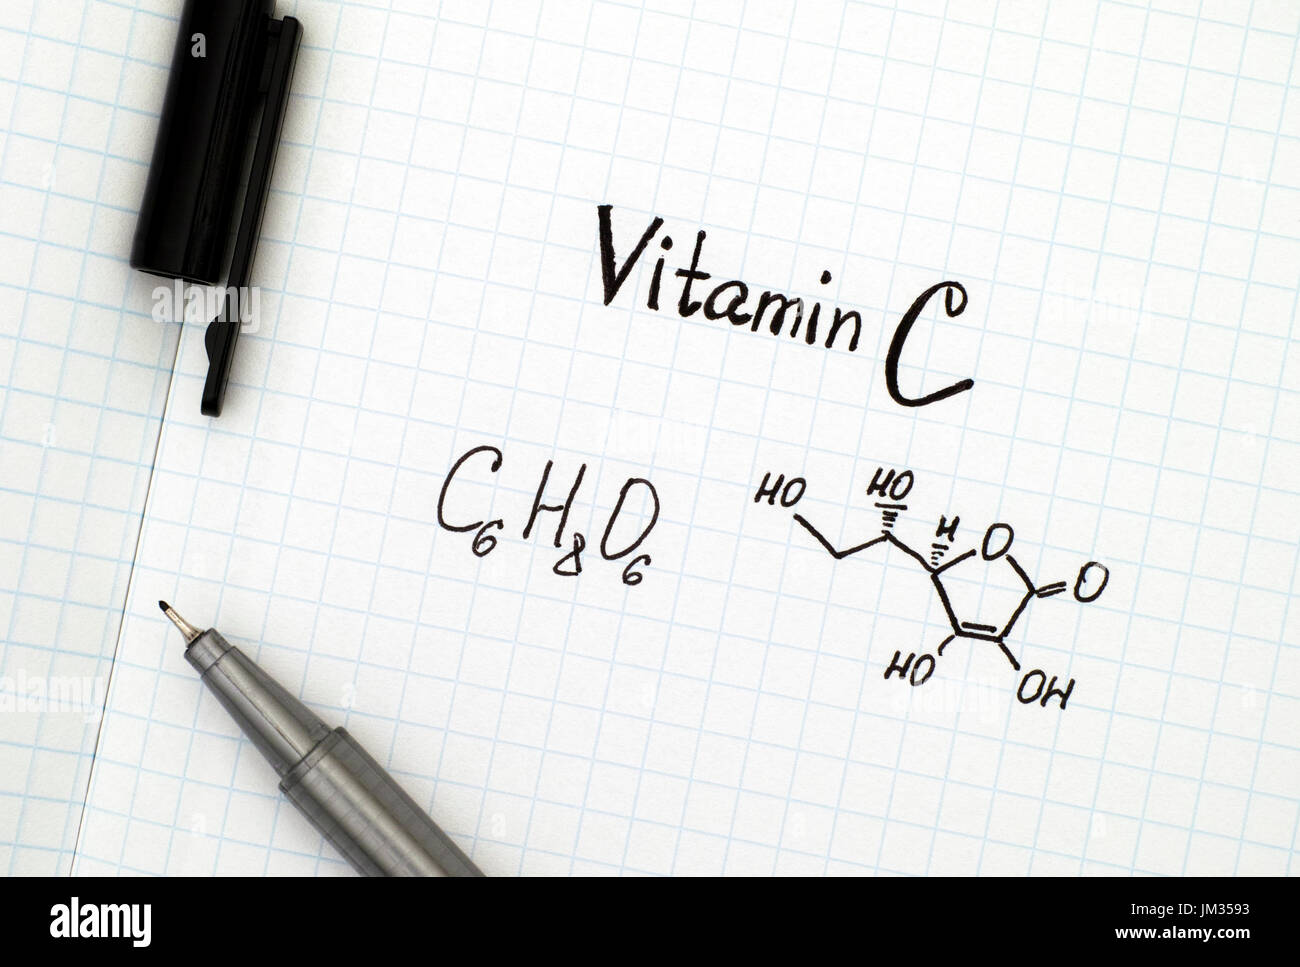 Chemical formula of Vitamin C with black pen. - Stock Image